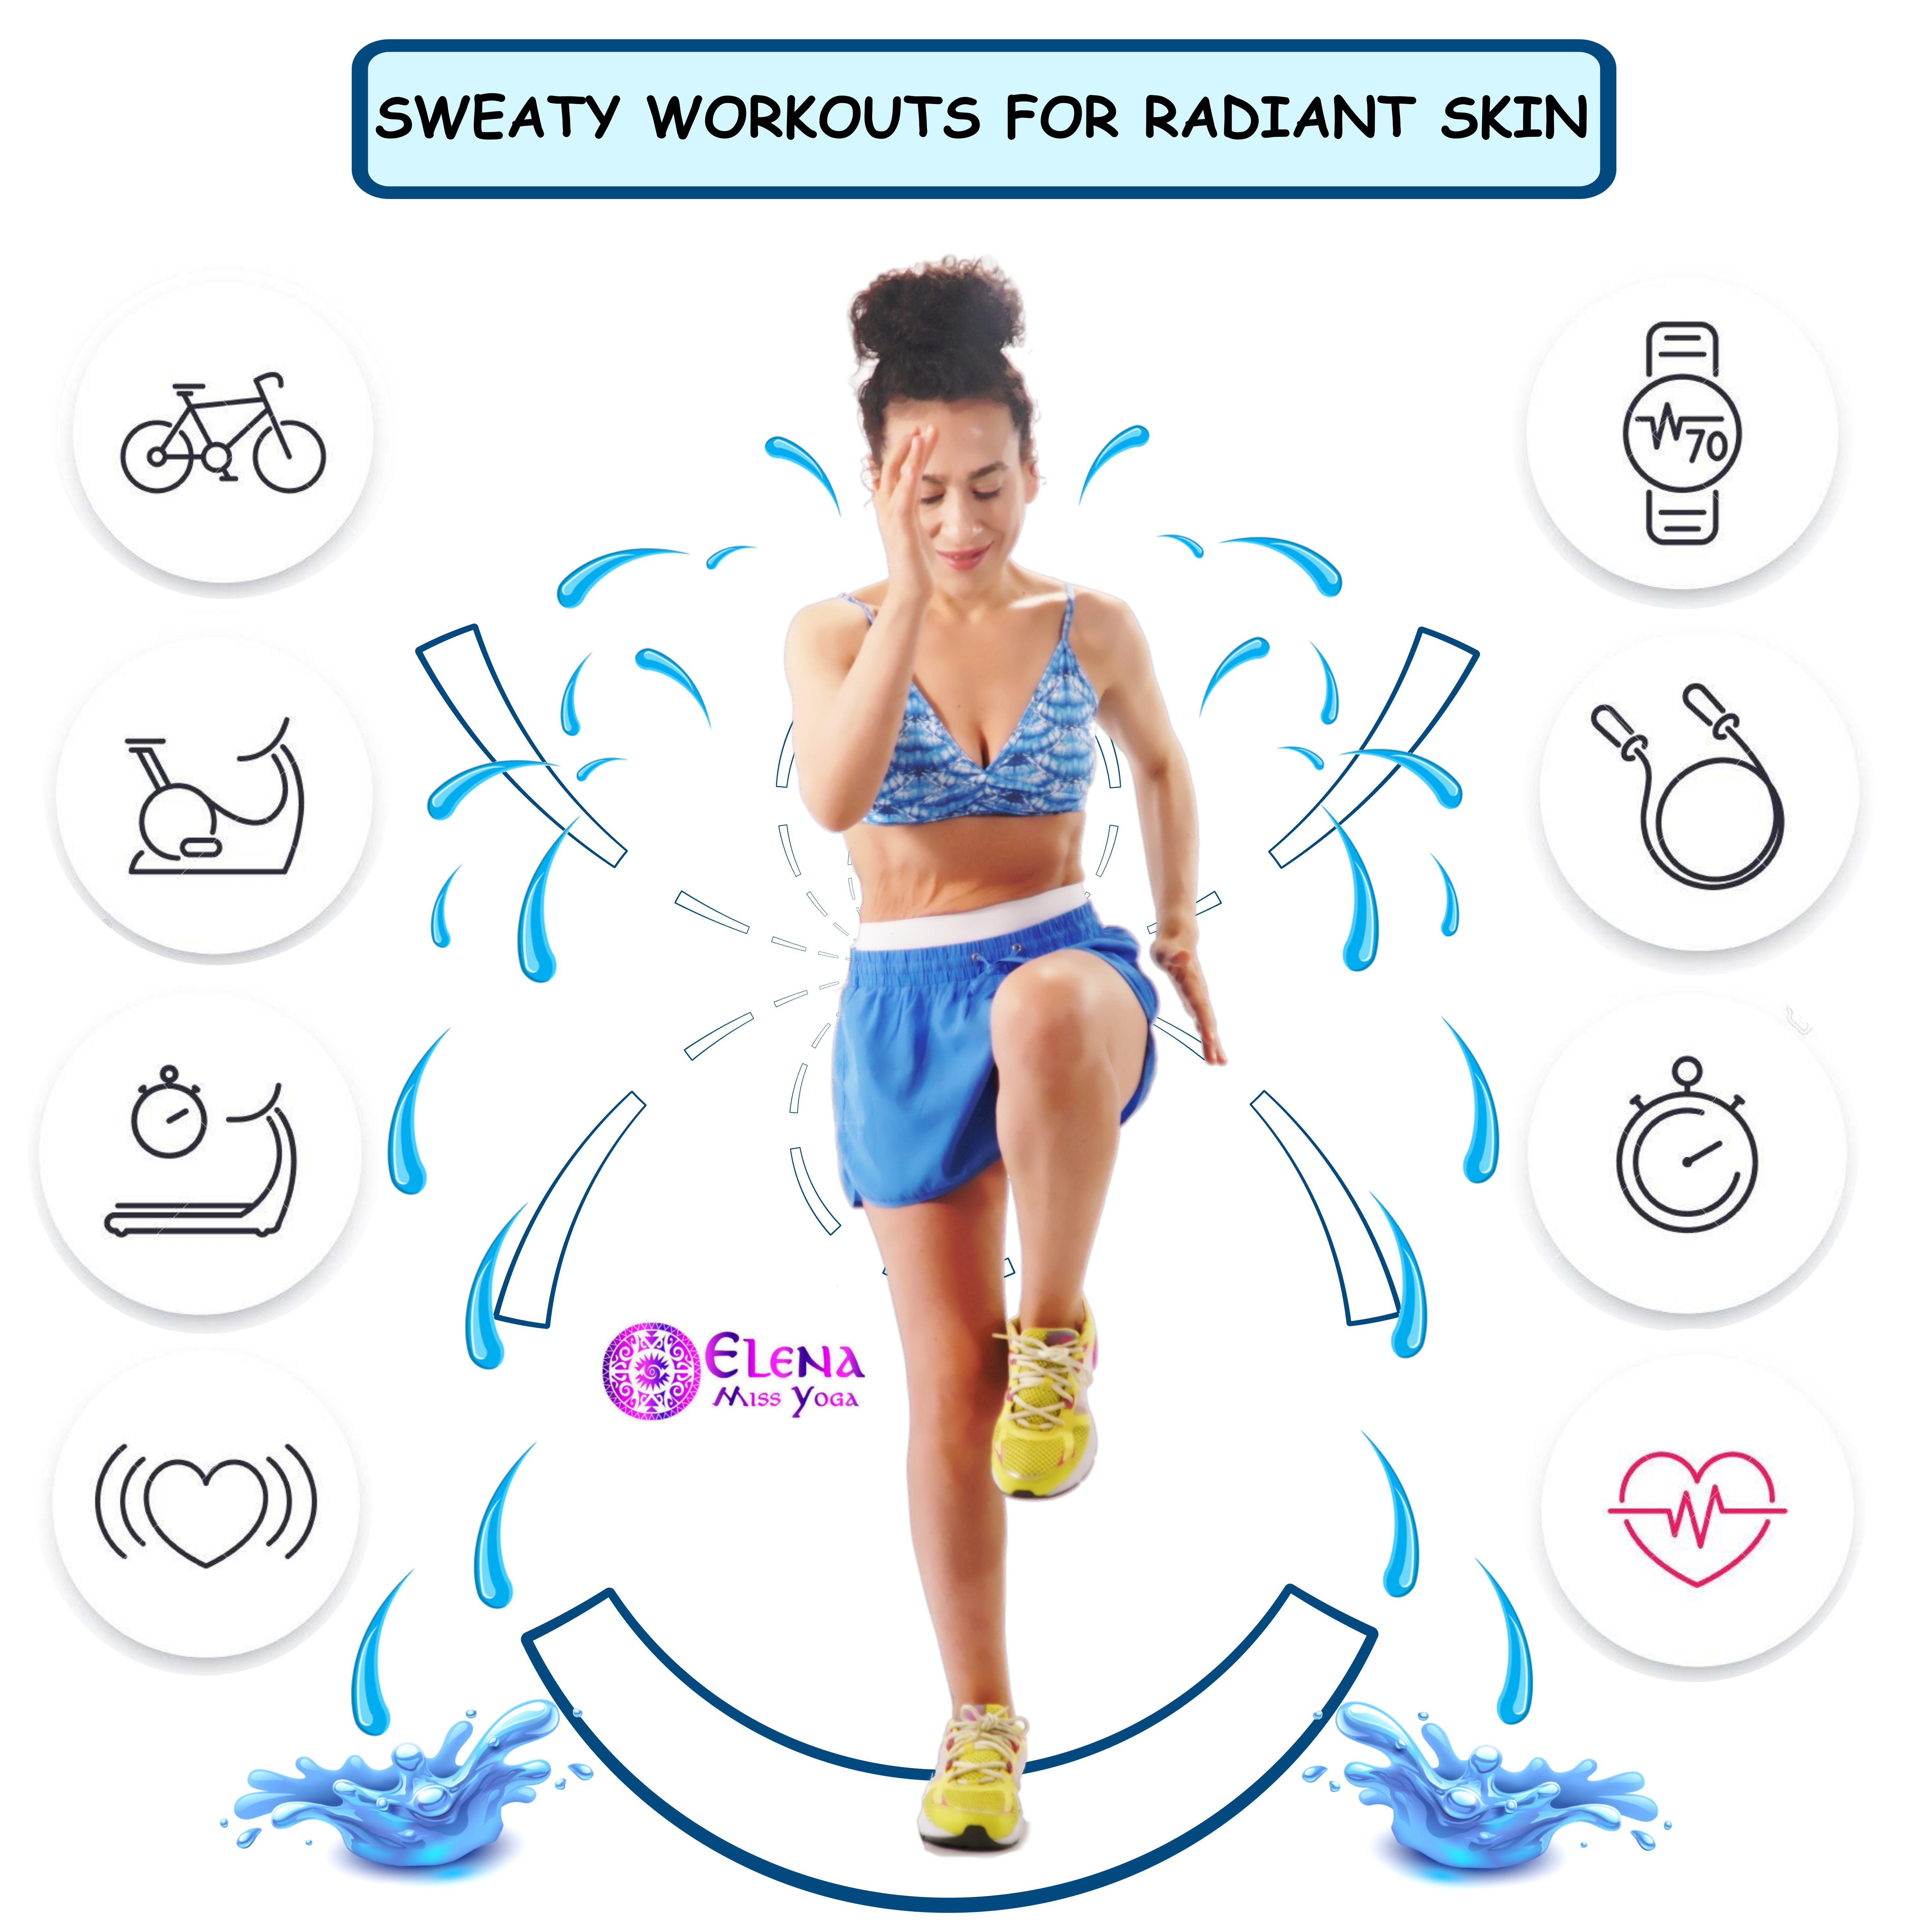 SWEATY WORKOUTS FOR RADIANT SKIN